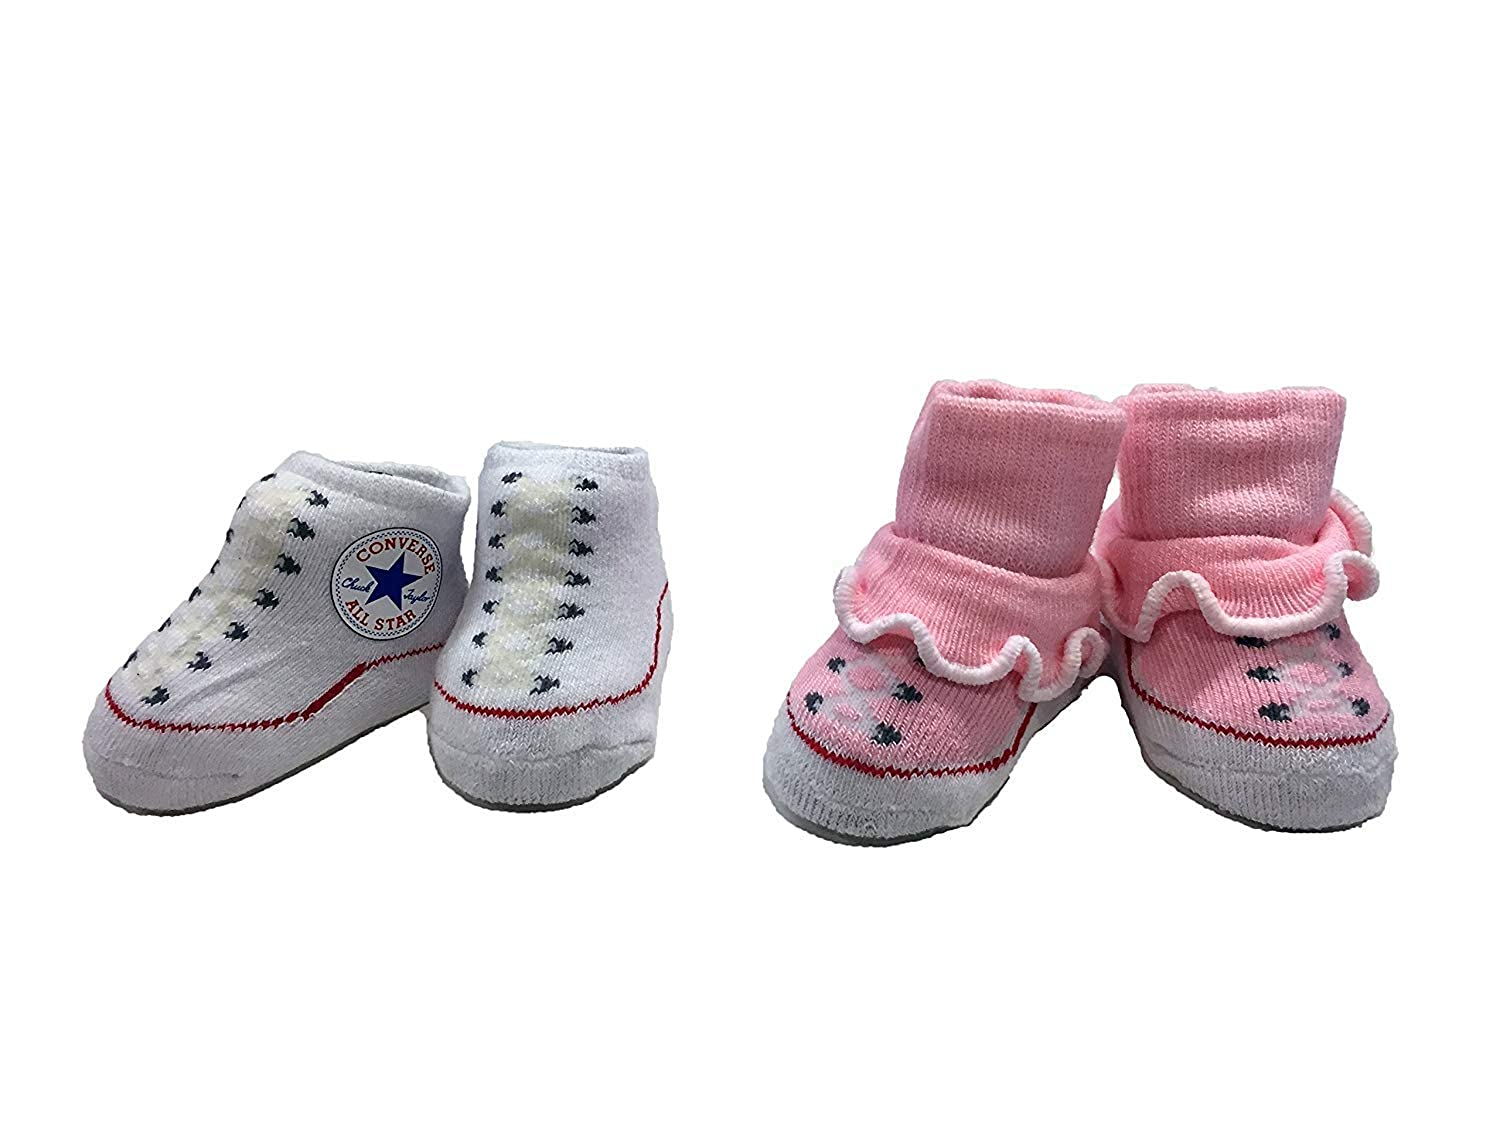 Converse Baby Booties Set for Infant Boys and Girls (0-6 Months) 0 - 6 Months ICV0012